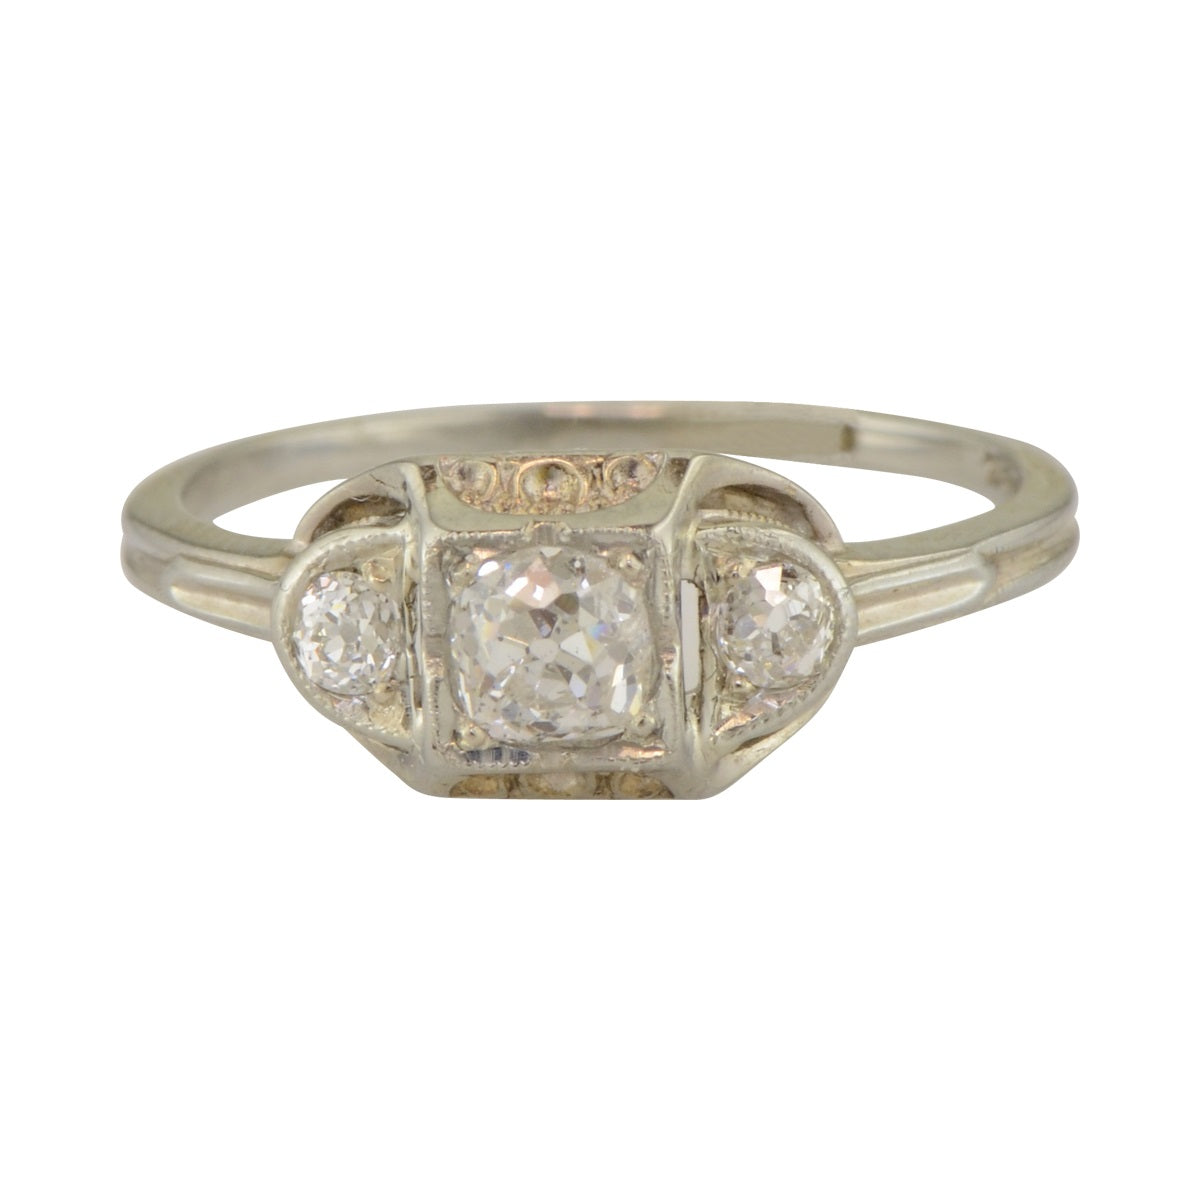 Collins Art Deco Vintage Engagement Ring in White Gold